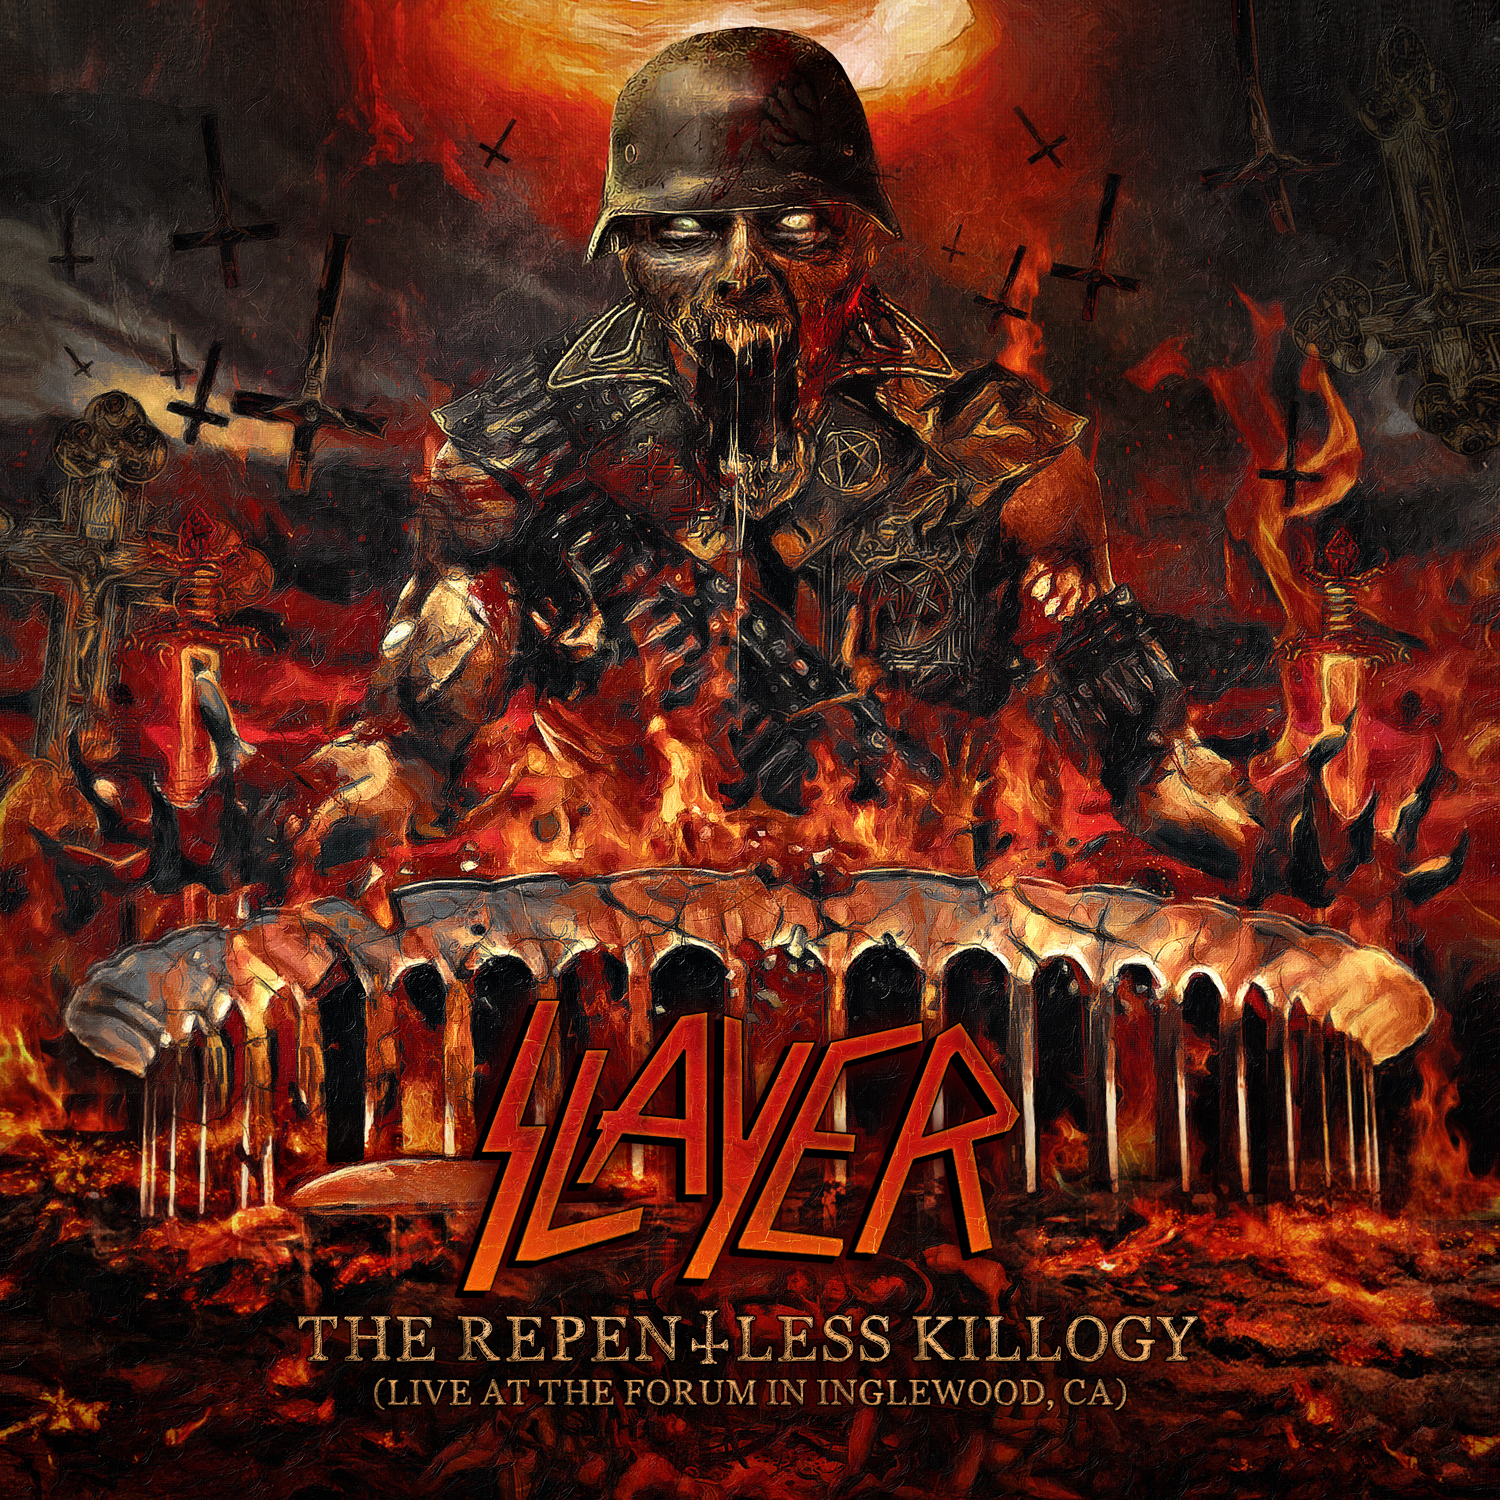 the repentless killogy - live